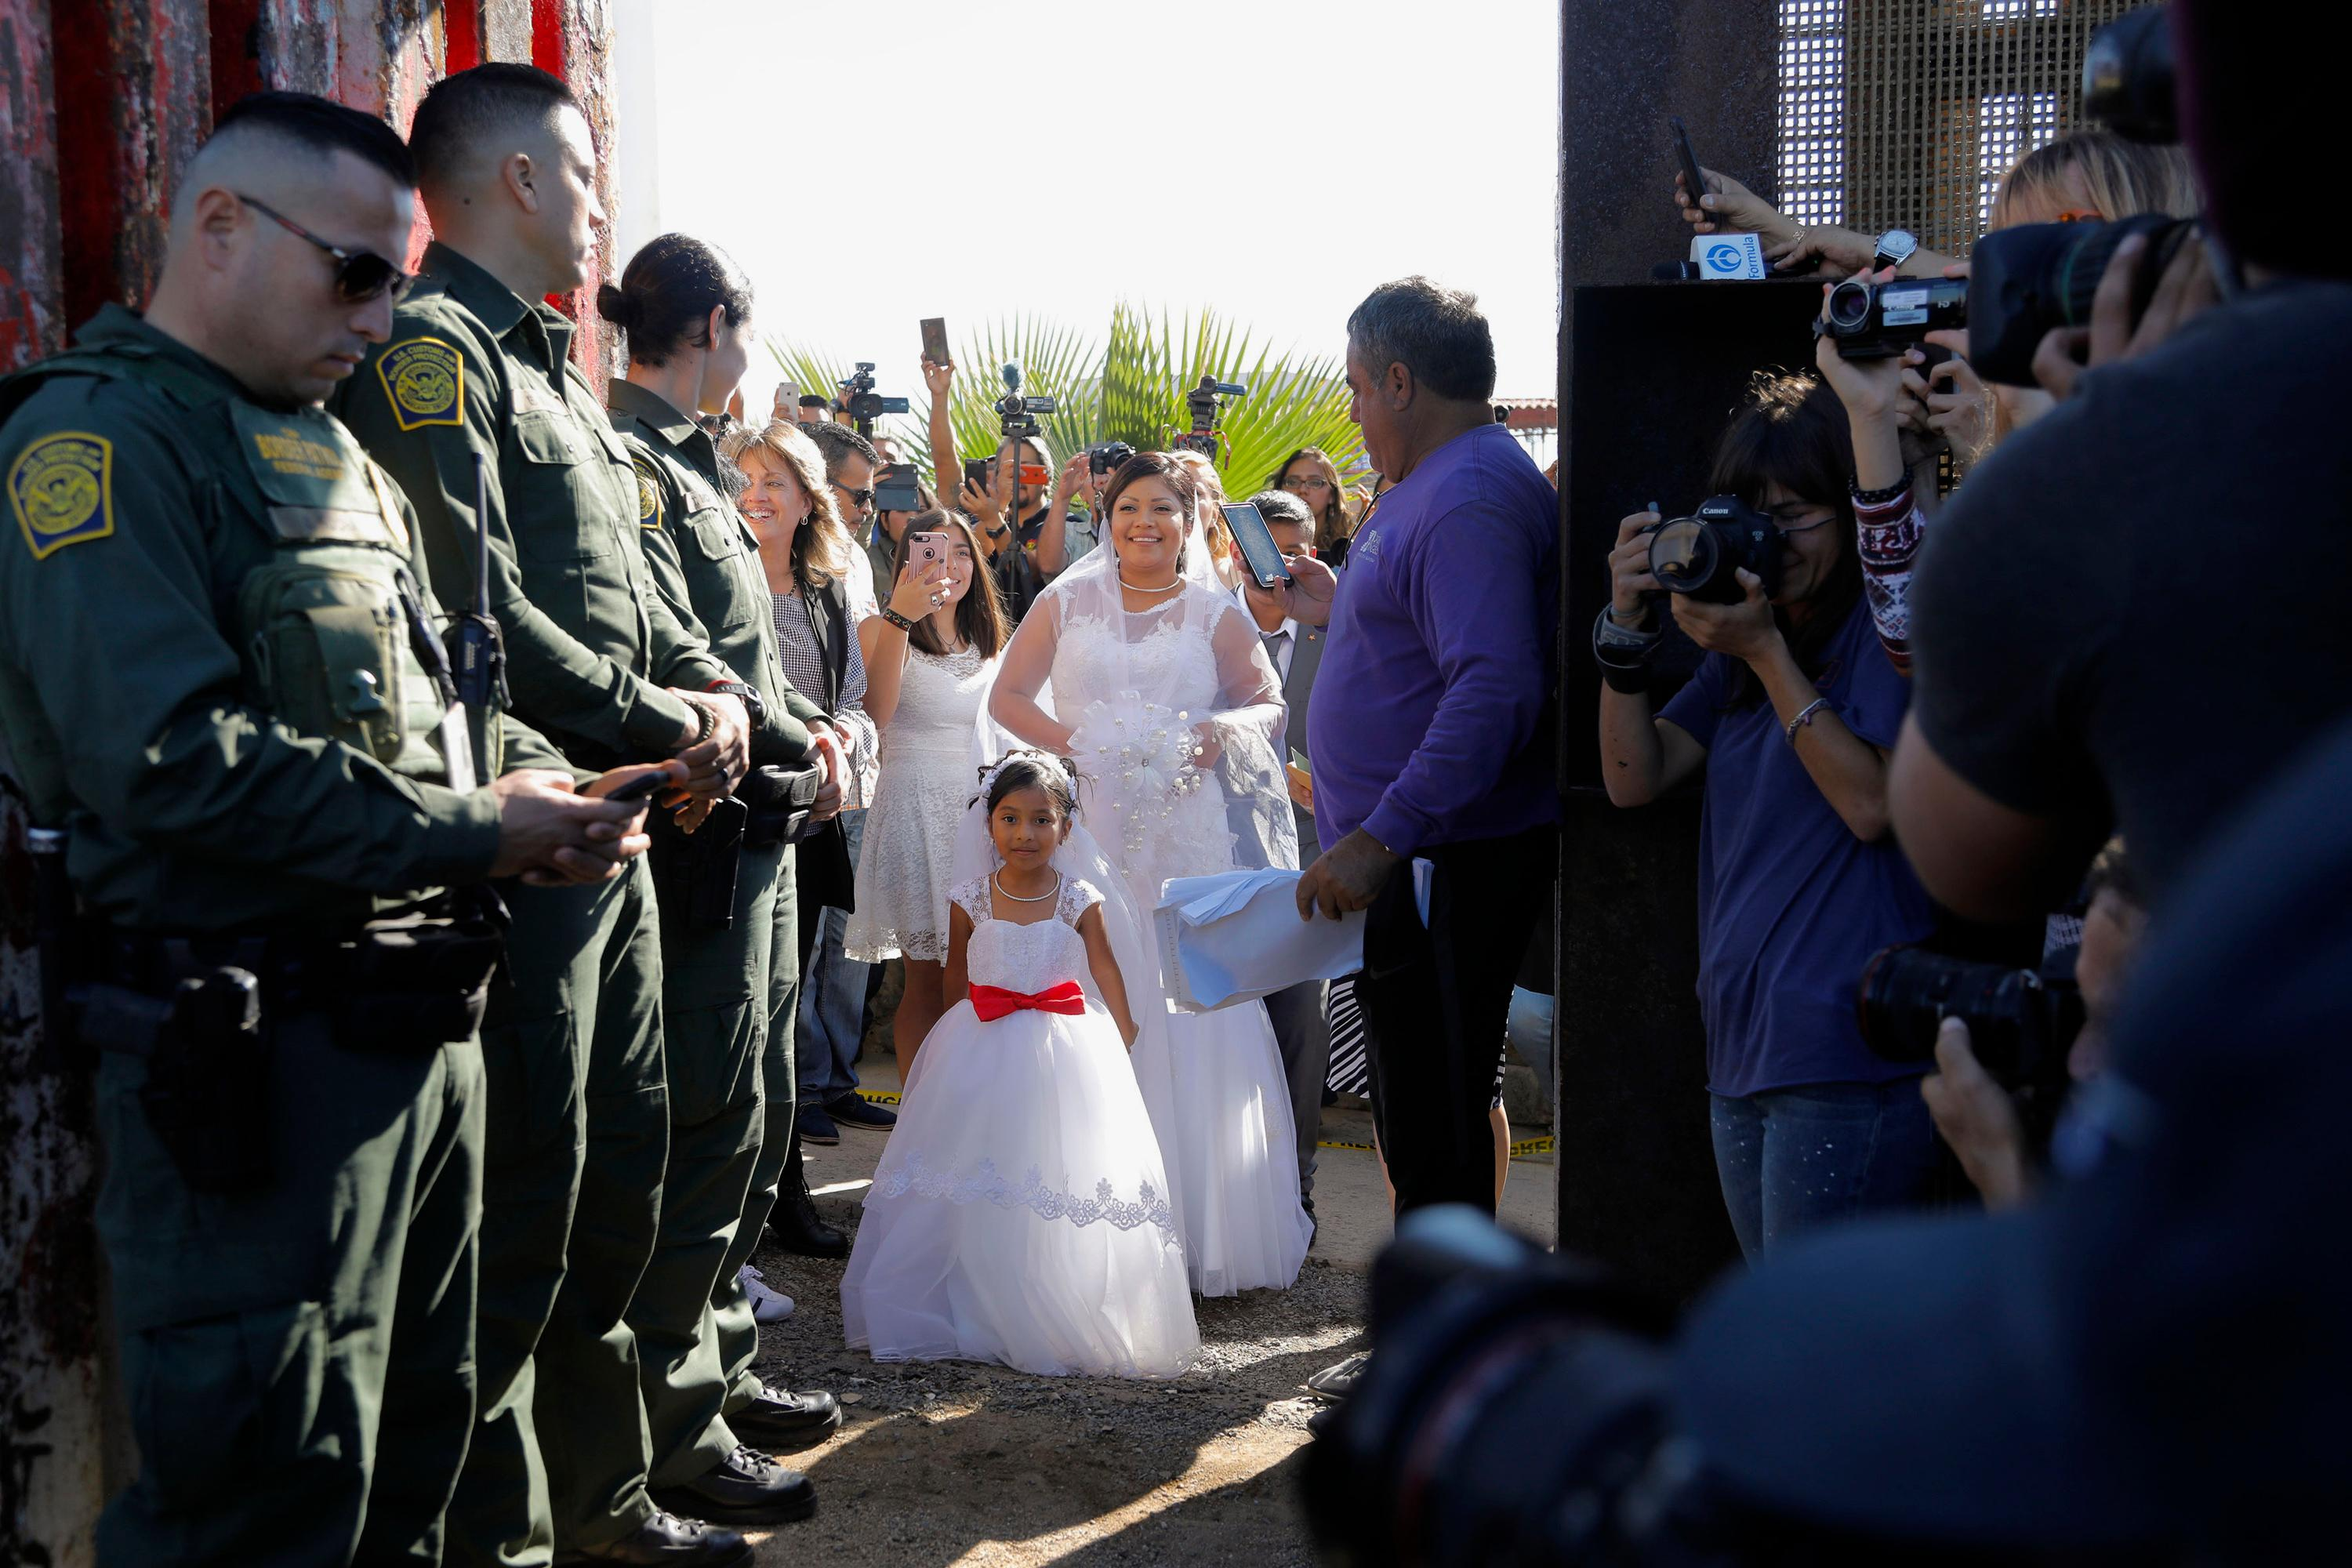 "In this Saturday, Nov. 18, 2017, photo, Evelia Reyes, along with her daughter, watches at the ""Door of Hope"", part of the for the border fence, for her fiance, Brian Houston, of San Diego, to walk up for their wedding in San Diego. The United States man and the Mexican woman wedded Saturday between the doors of a steel border gate that opens for only an hour or so every year. Their wedding in San Diego was the first for an opening of the gate known as the Door of Hope. (Howard Lipin//The San Diego Union-Tribune via AP)"